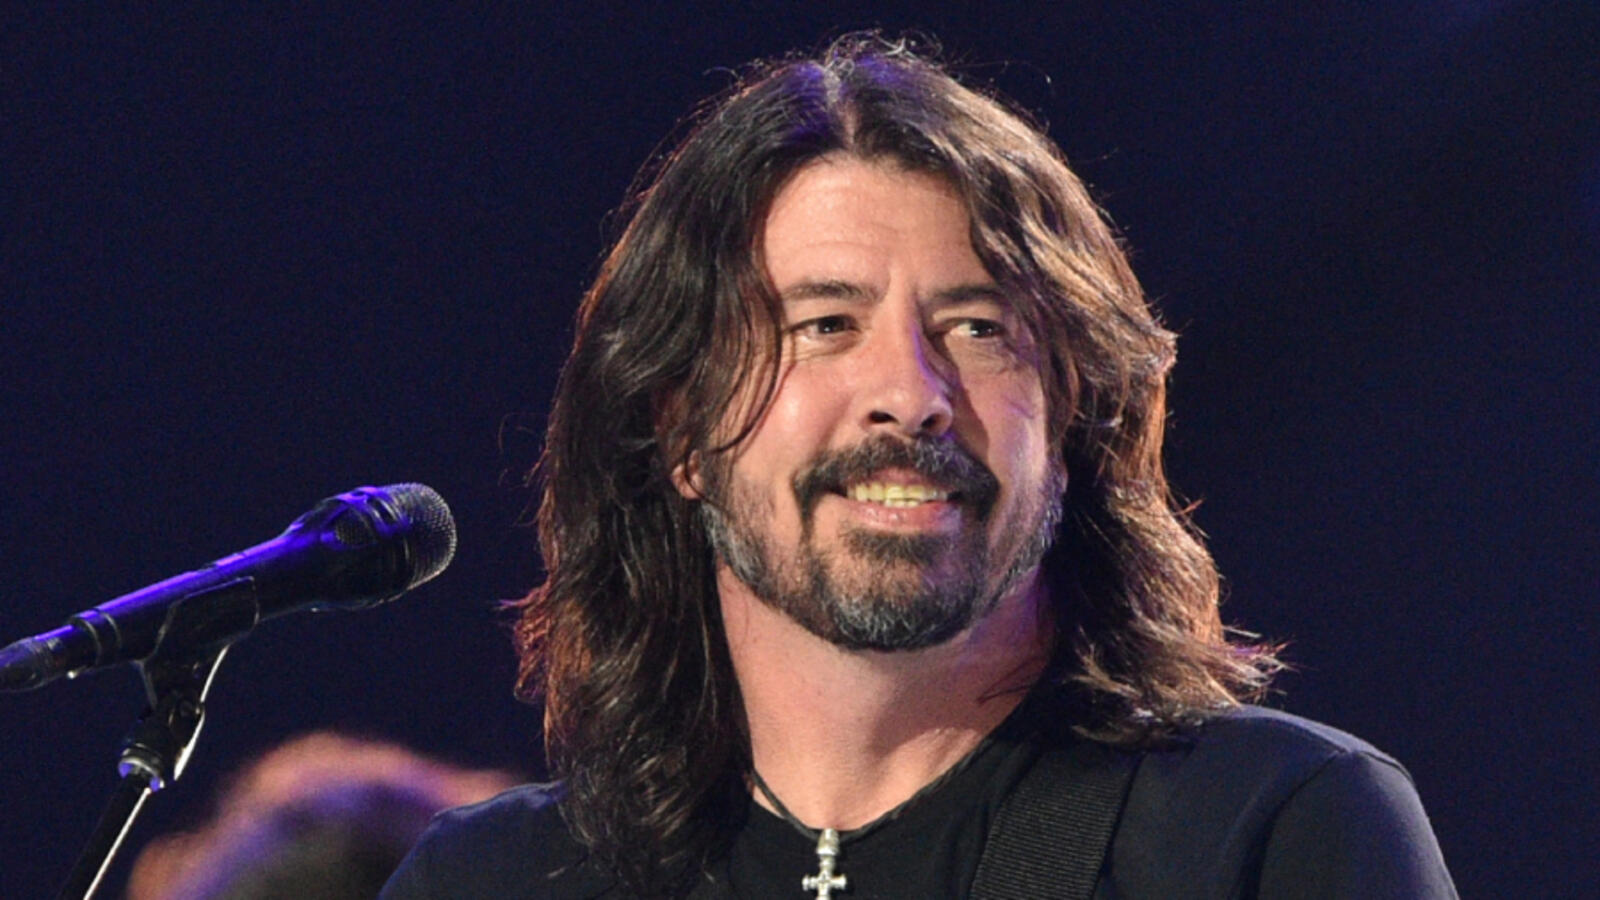 Dave Grohl Shares Home Videos In Trailer For New Book 'The Storyteller'